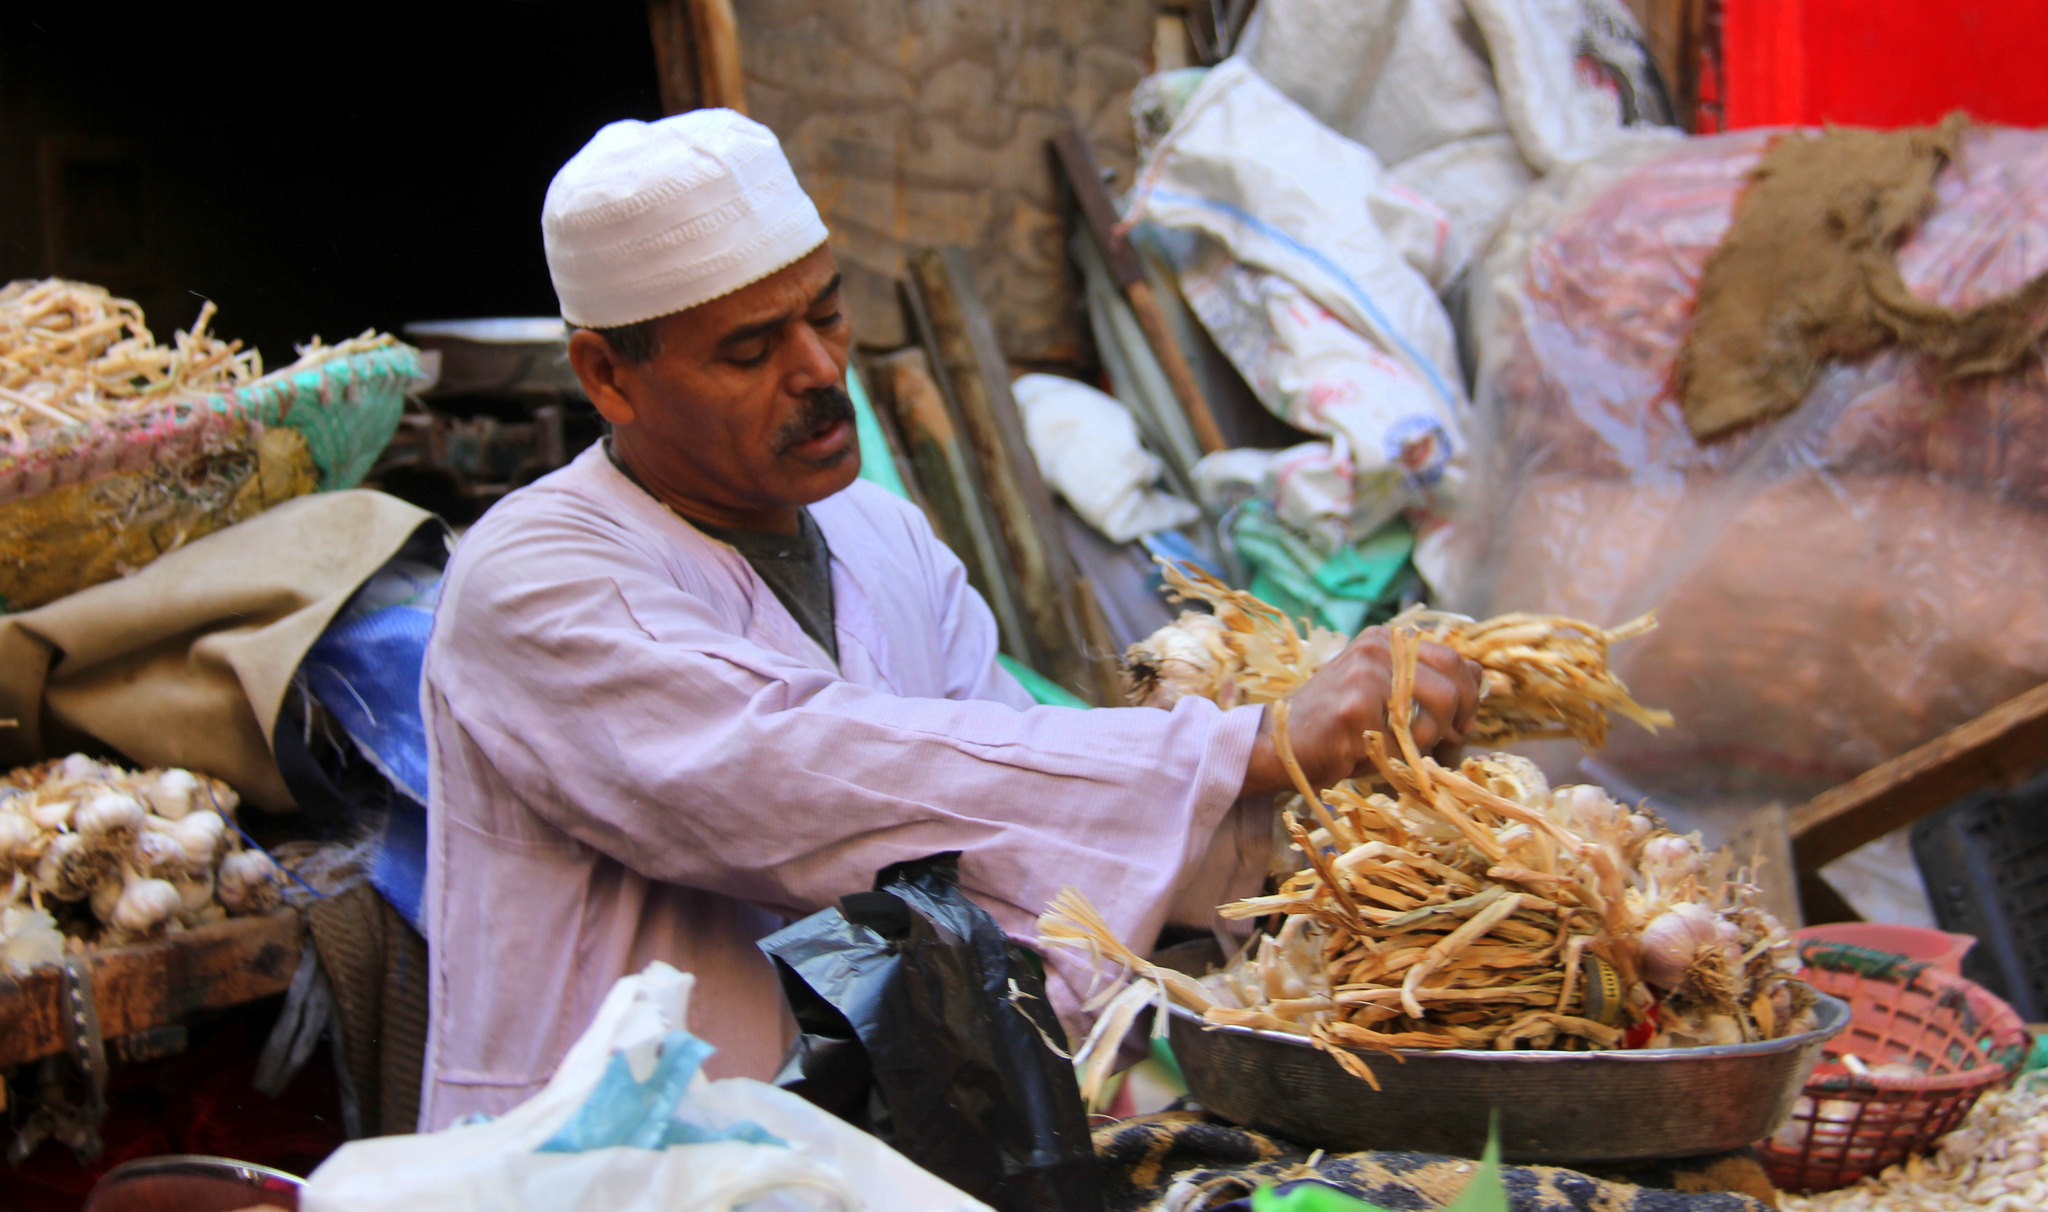 garlic seller at a local market in Cairo